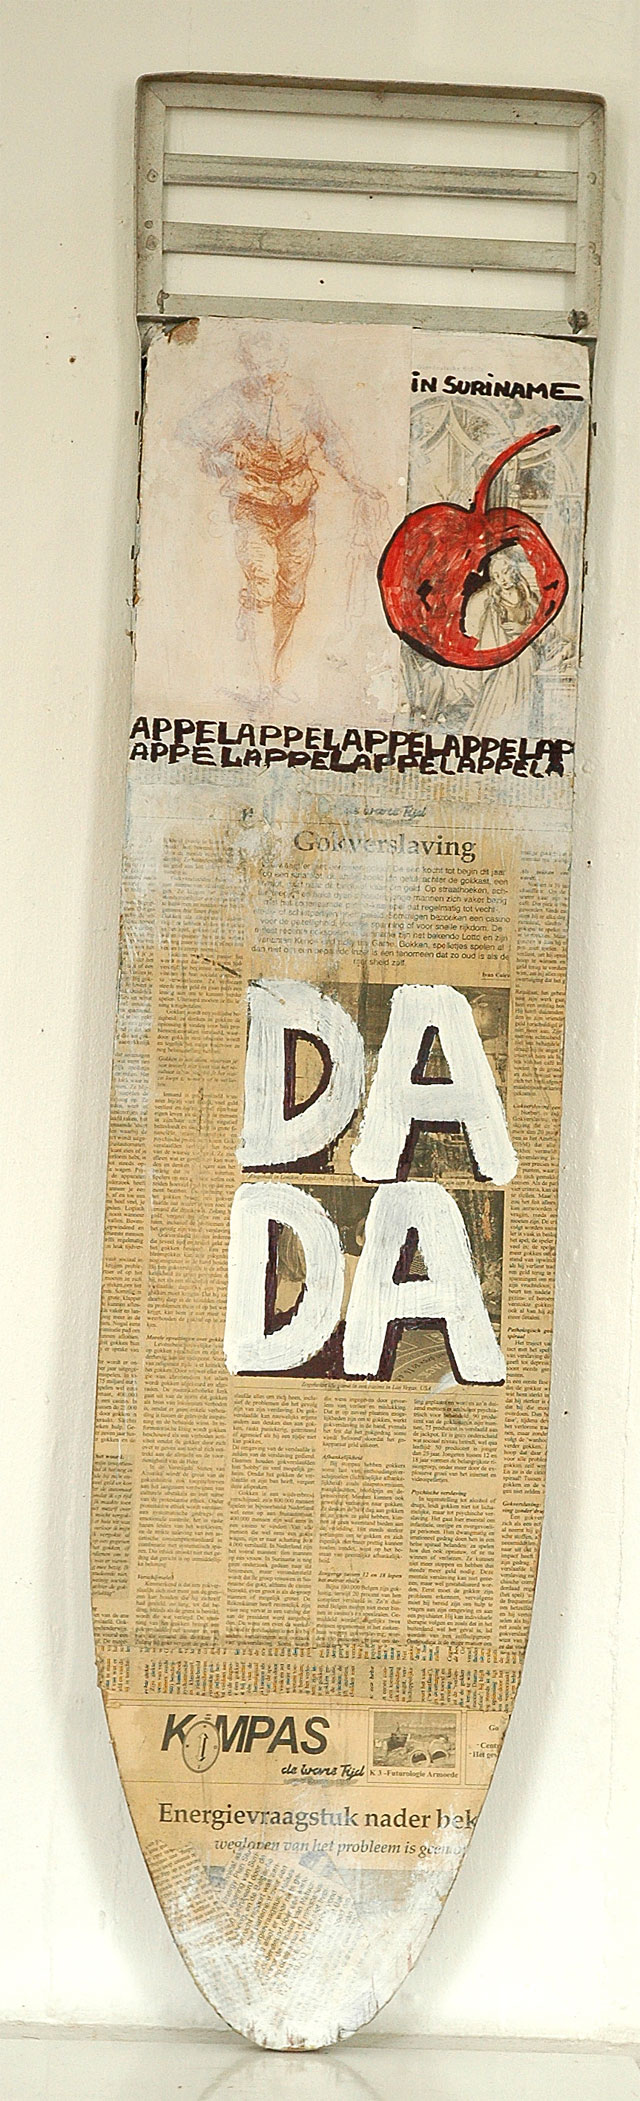 Kurt Nahar, 'Dada en de appel I' [Dada and the apple I], mixed media  on wood, 30x125x3cm, 2008  - USD 250 / PHOTO Readytex Art Gallery/William Tsang